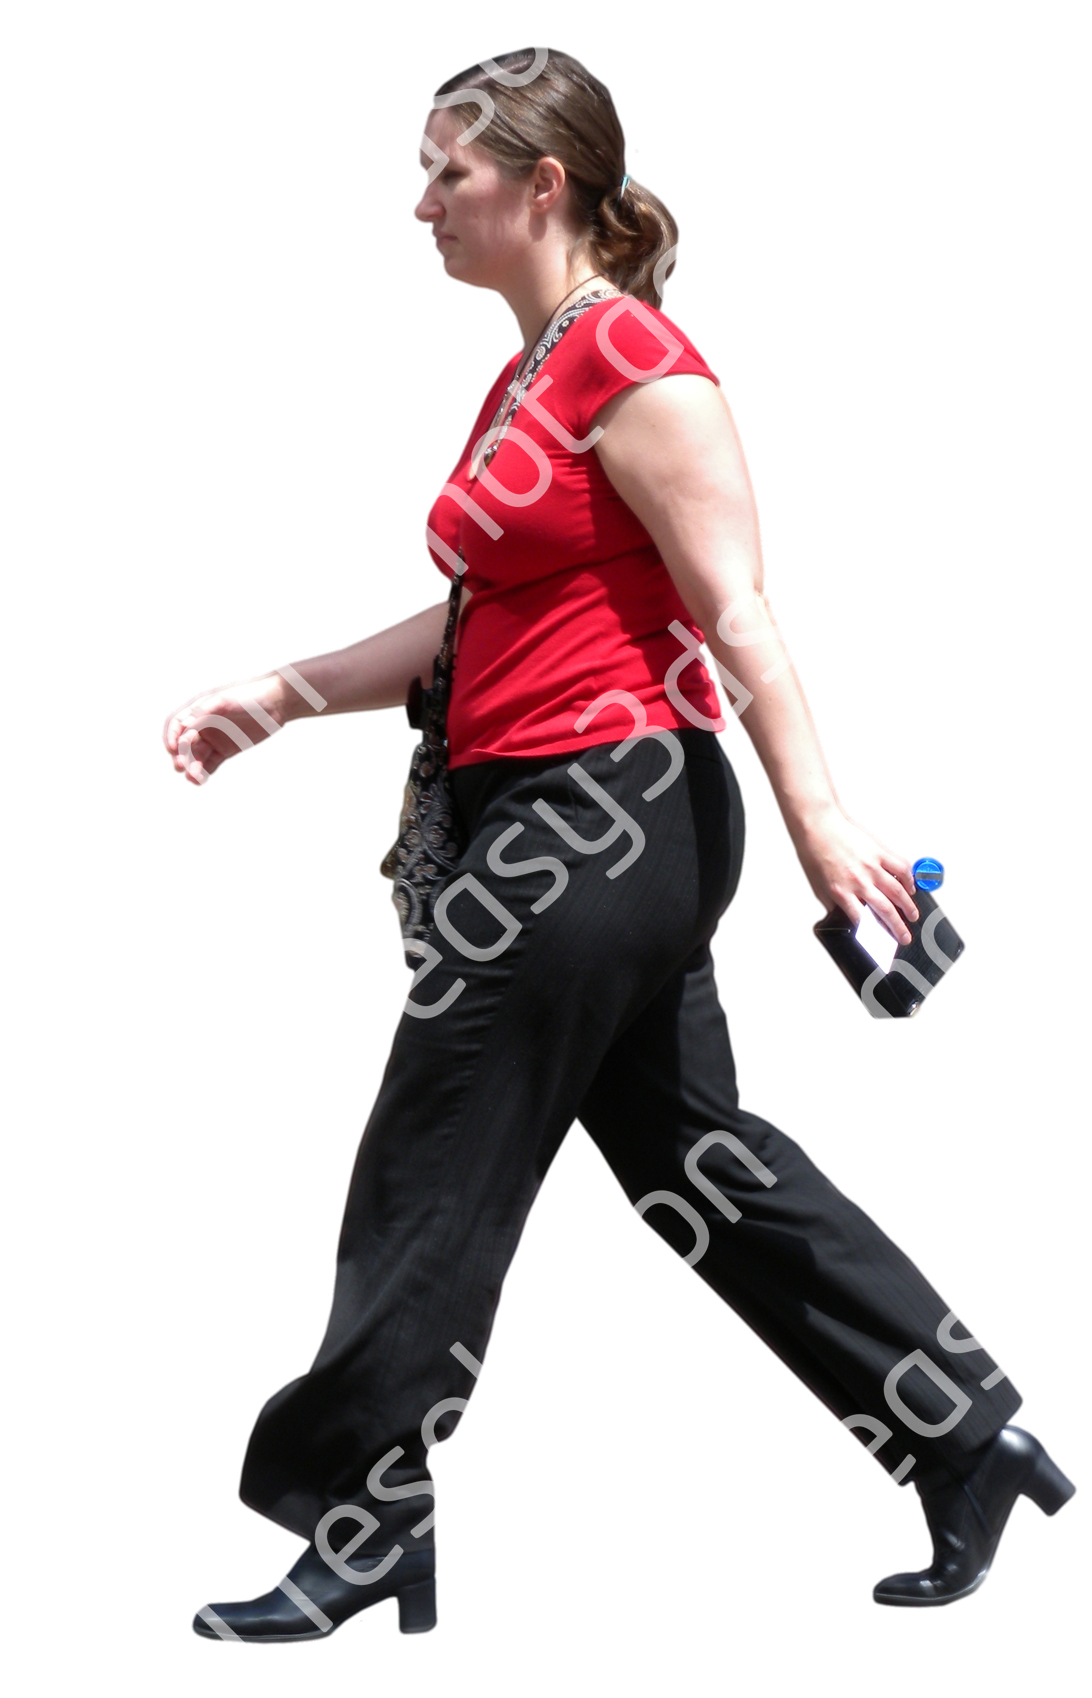 (Single) Business People V. 1 #042 woman, walking